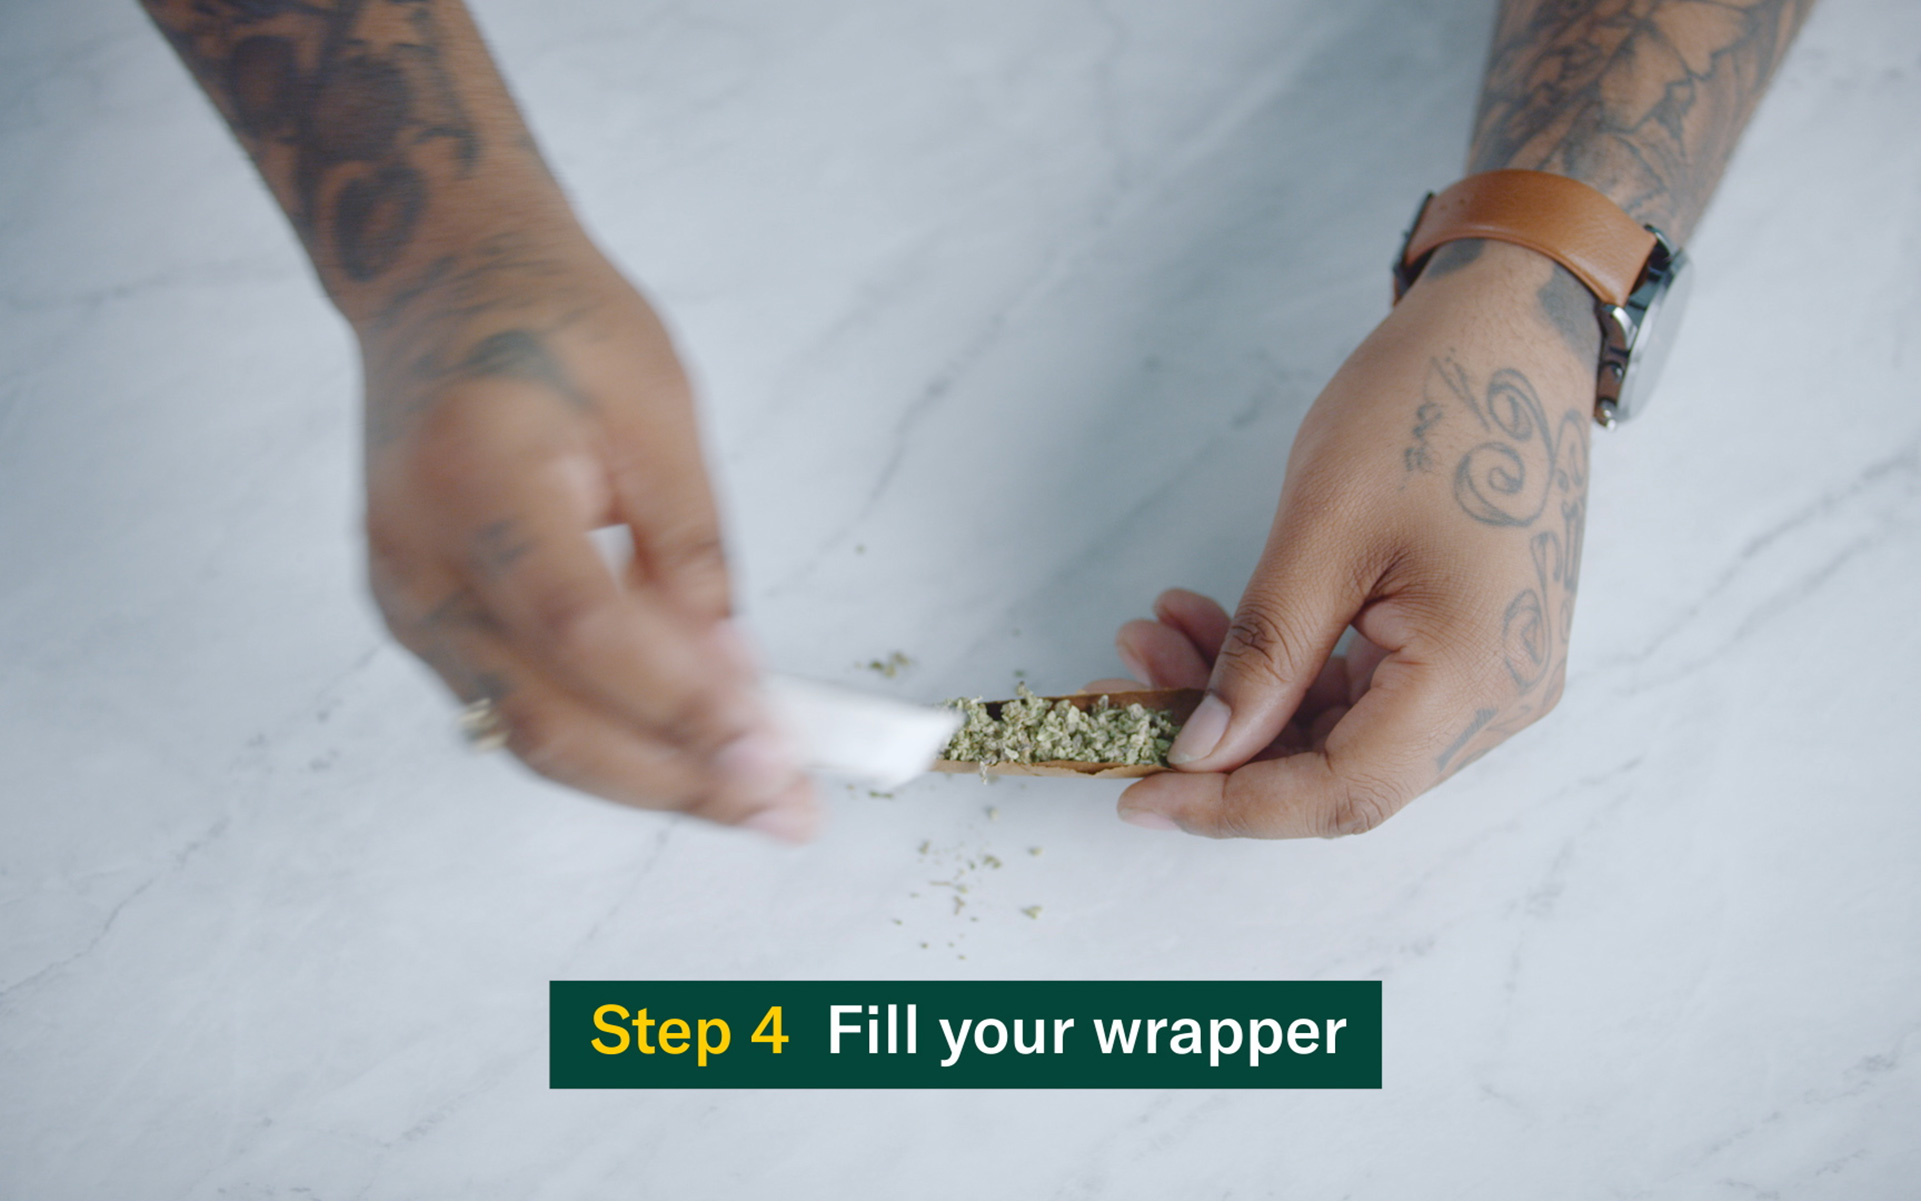 How to roll up a blunt step by step